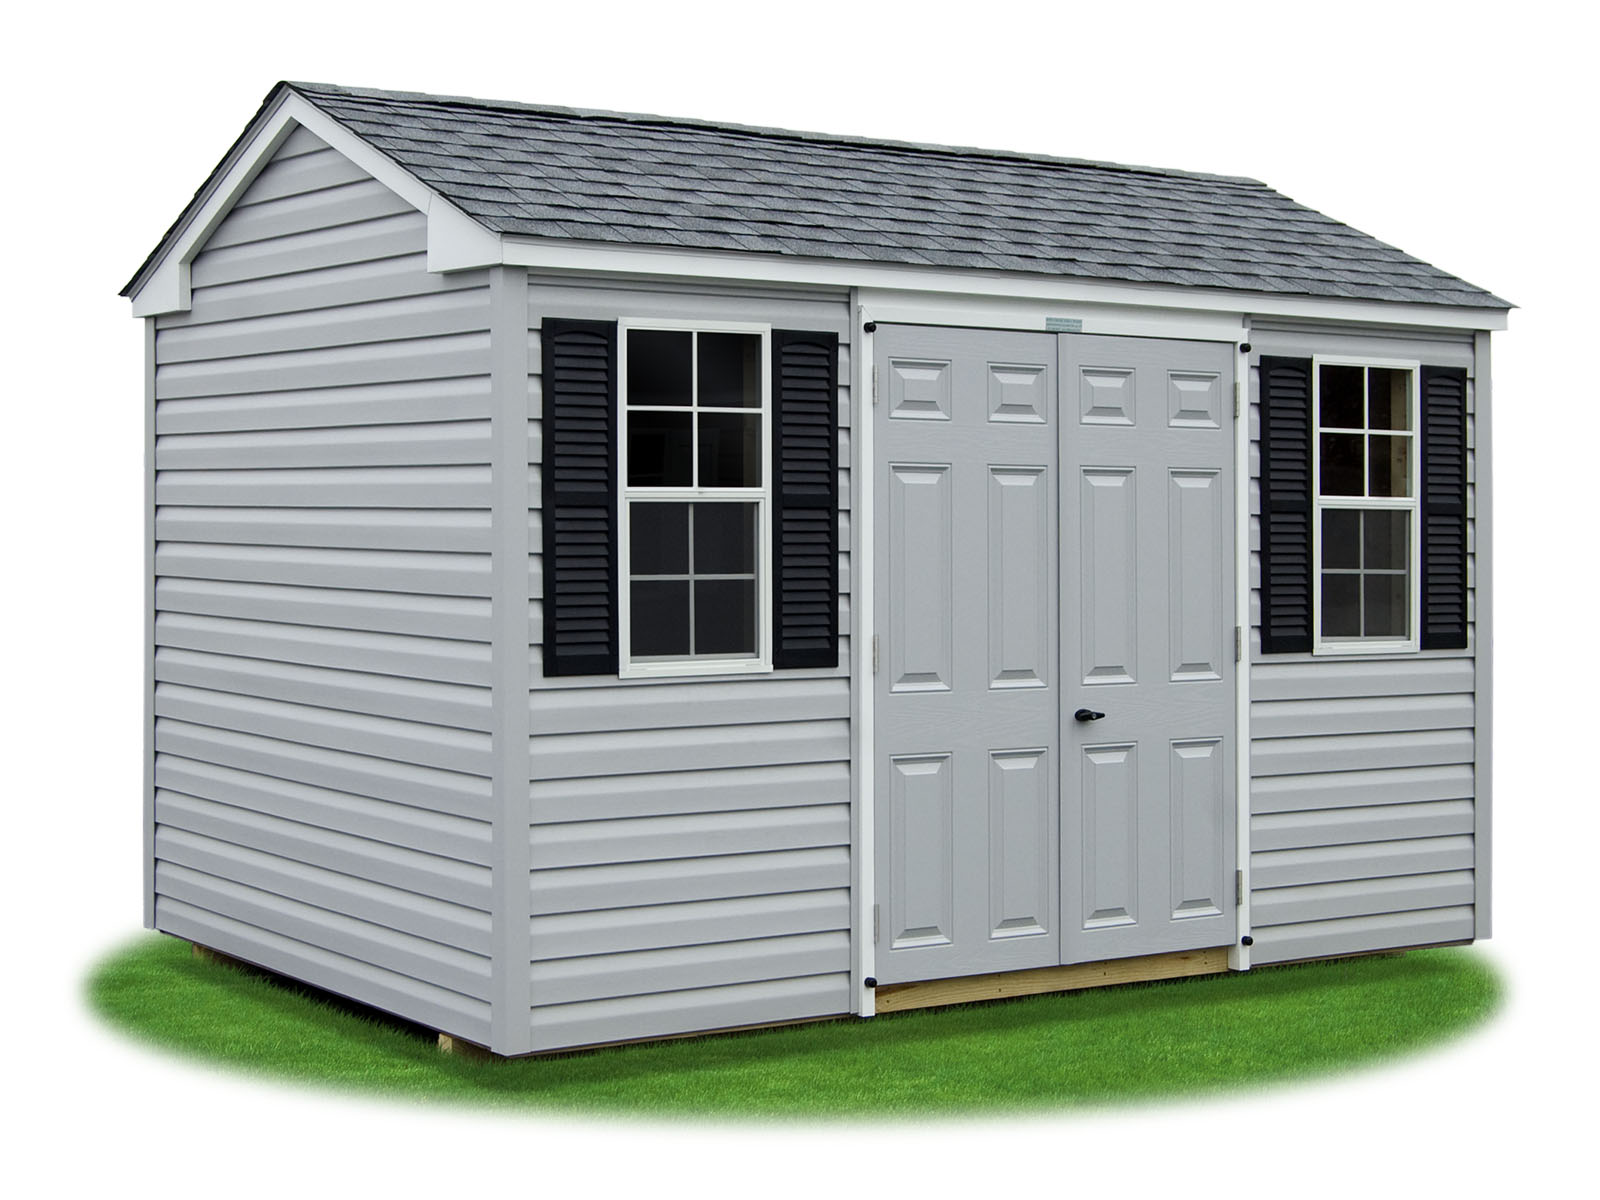 hight resolution of 8x12 vinyl sided side entry peak storage shed available at pine creek structures